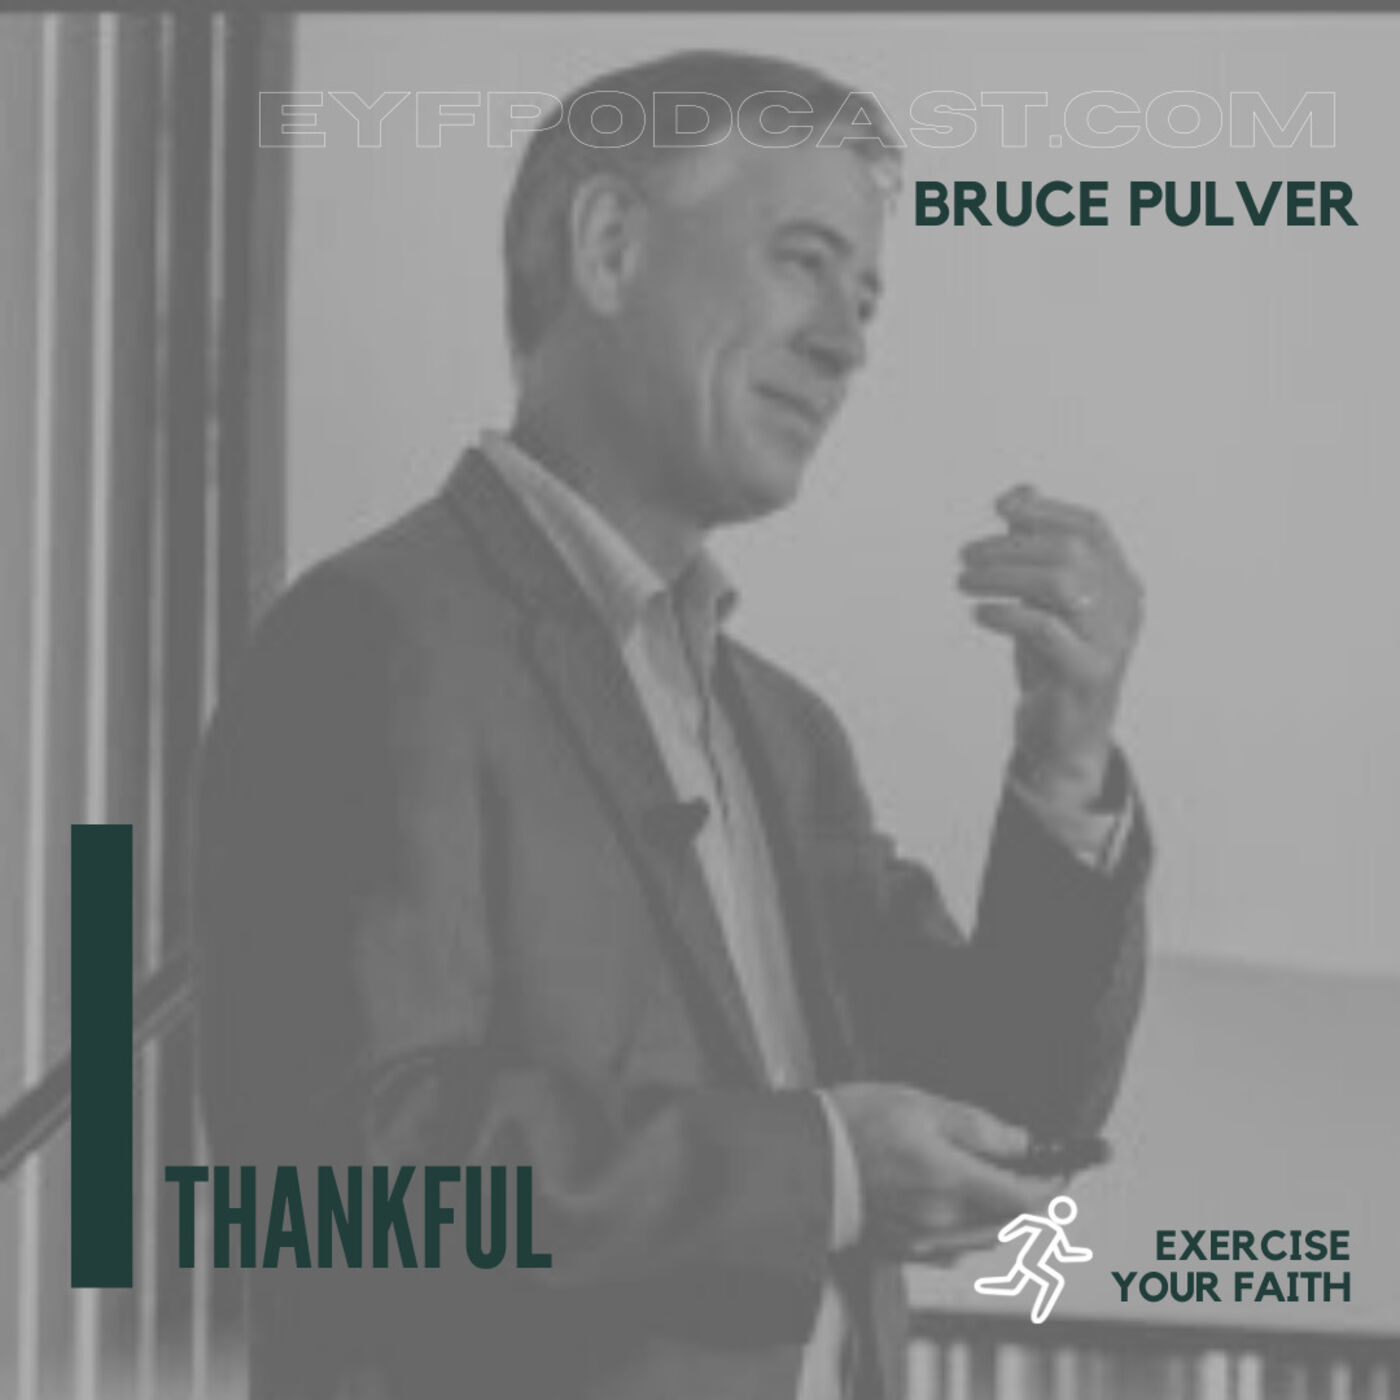 EYFPodcast- Exercise Your Faith with Bruce Pulver as he speaks life one word at a time. Be THANKFUL!